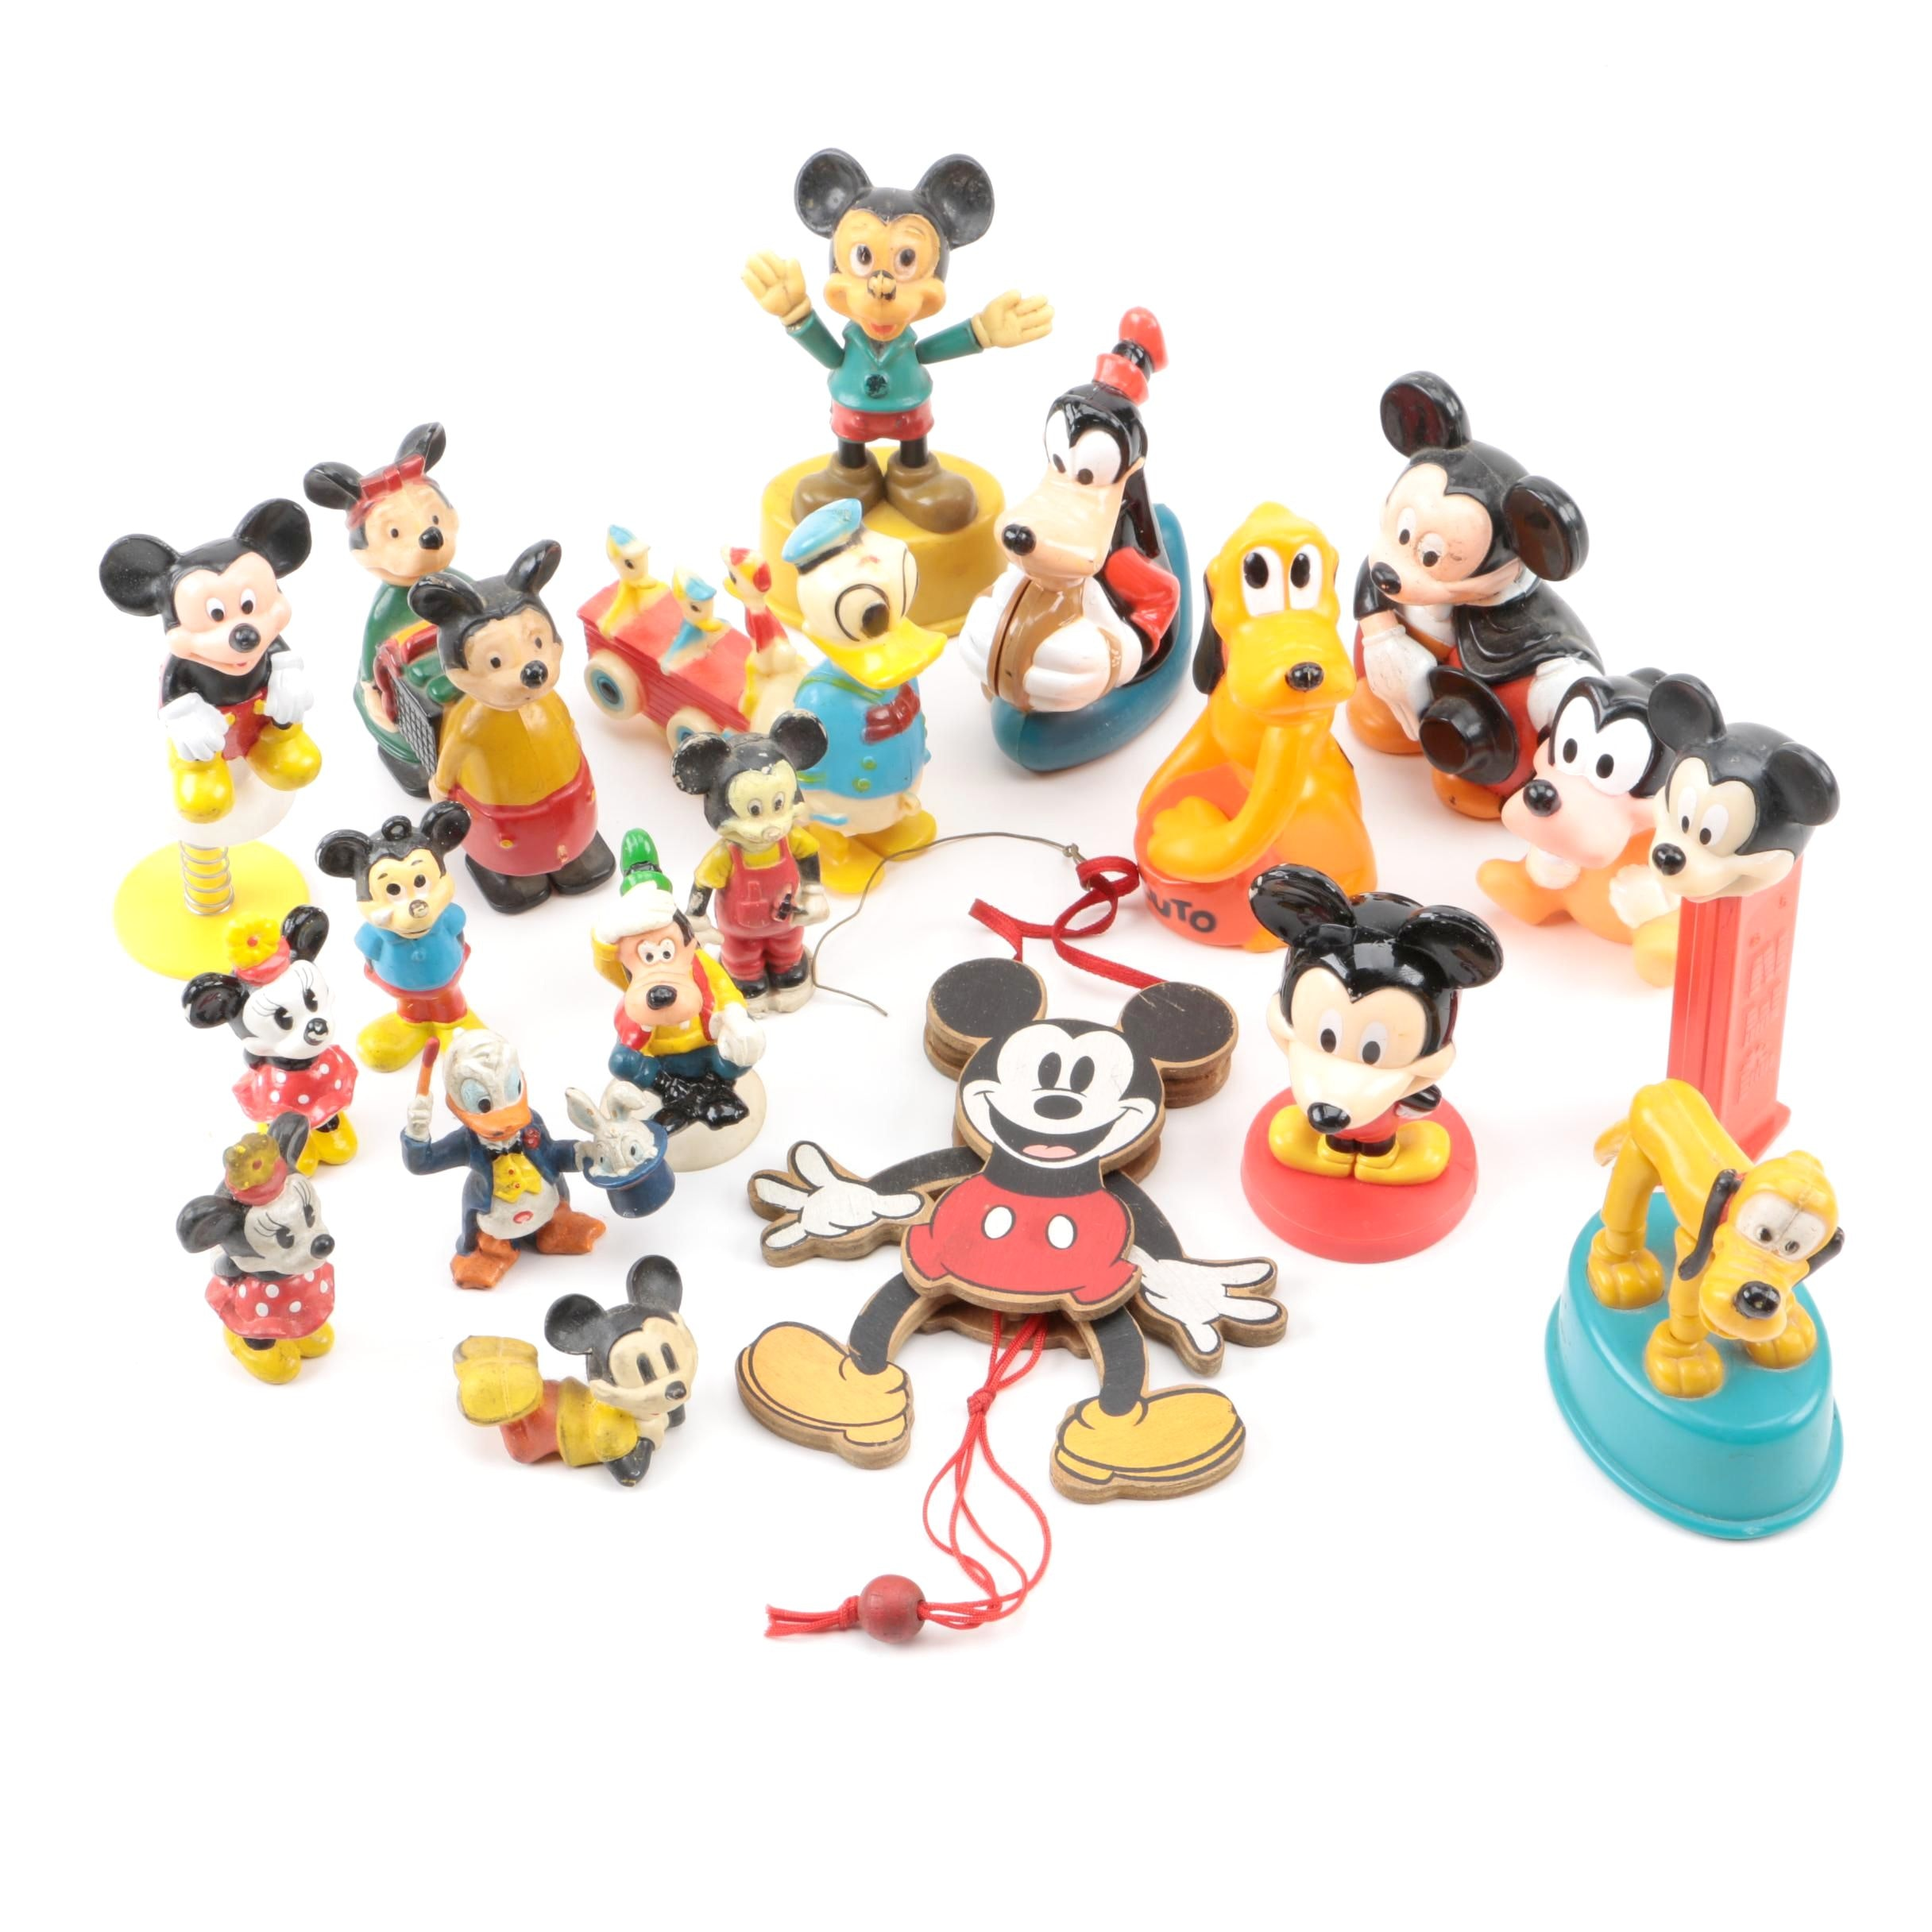 Assortment of Disney Plastic Figurines including Mickey, Minnie, Donald and More